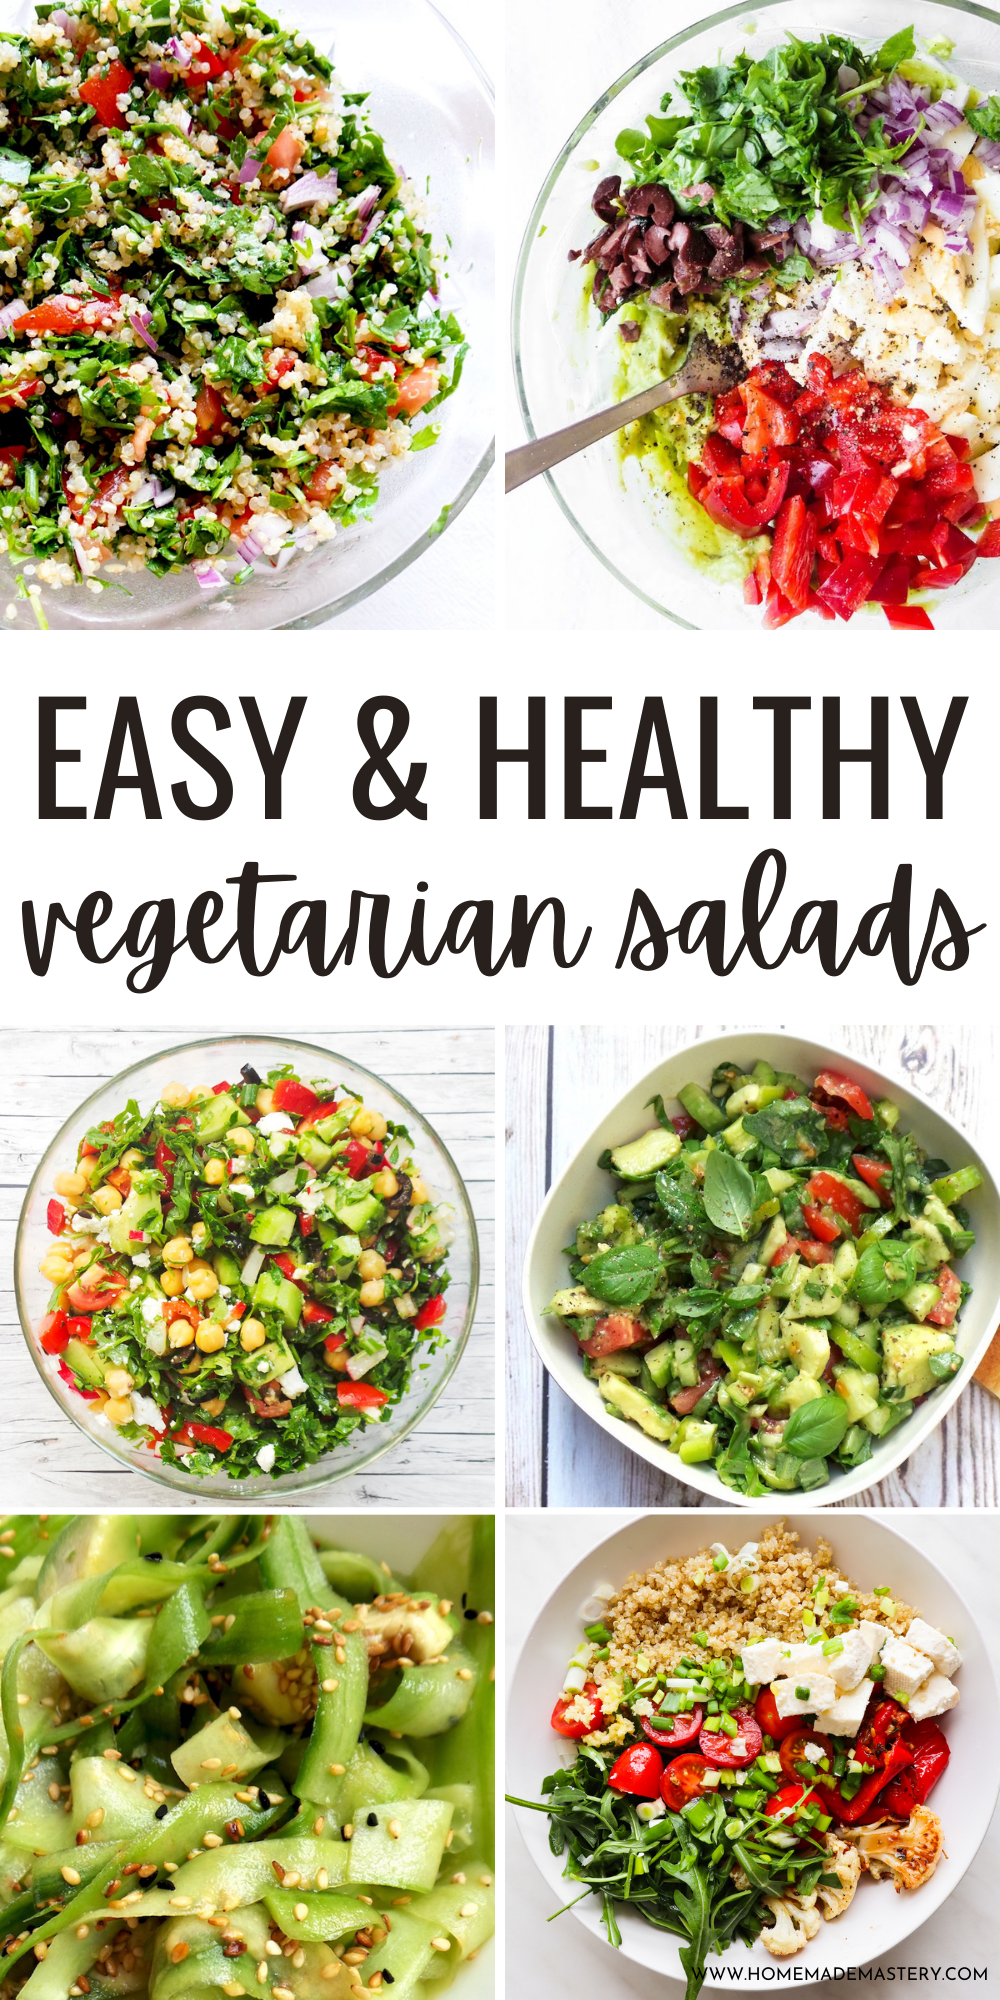 Eat a salad every day with this collection of easy healthy vegetarian salad recipes! These tasty salad ideas include healthy vegetable salads, filling meatless salads for lunch or dinner and plant-based salads packed with protein! Enjoy!